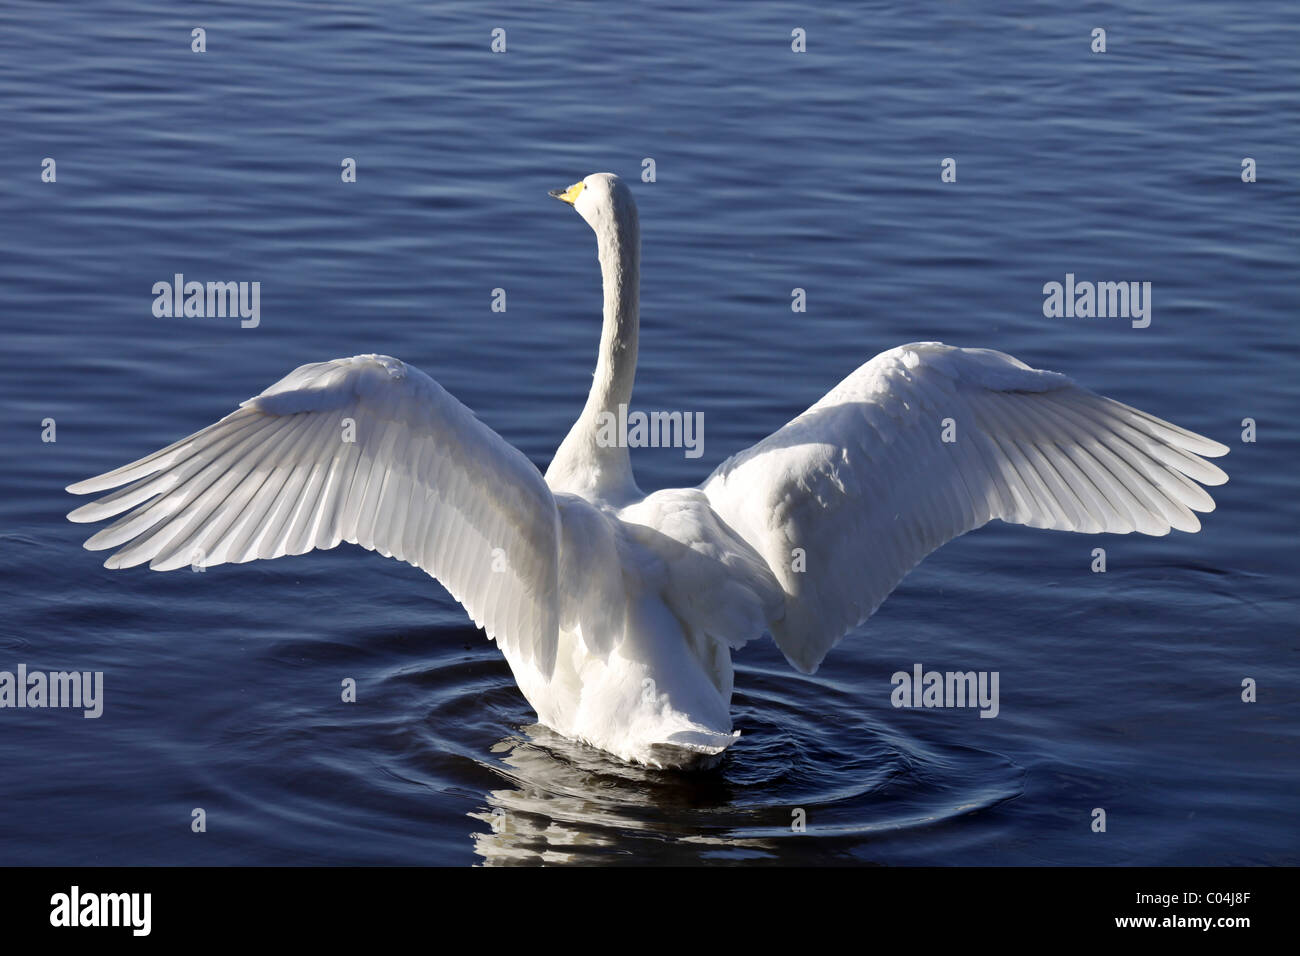 Whooper Swan Cygnus cygnus With Wings Outstretched At Martin Mere WWT, Lancashire UK Stock Photo